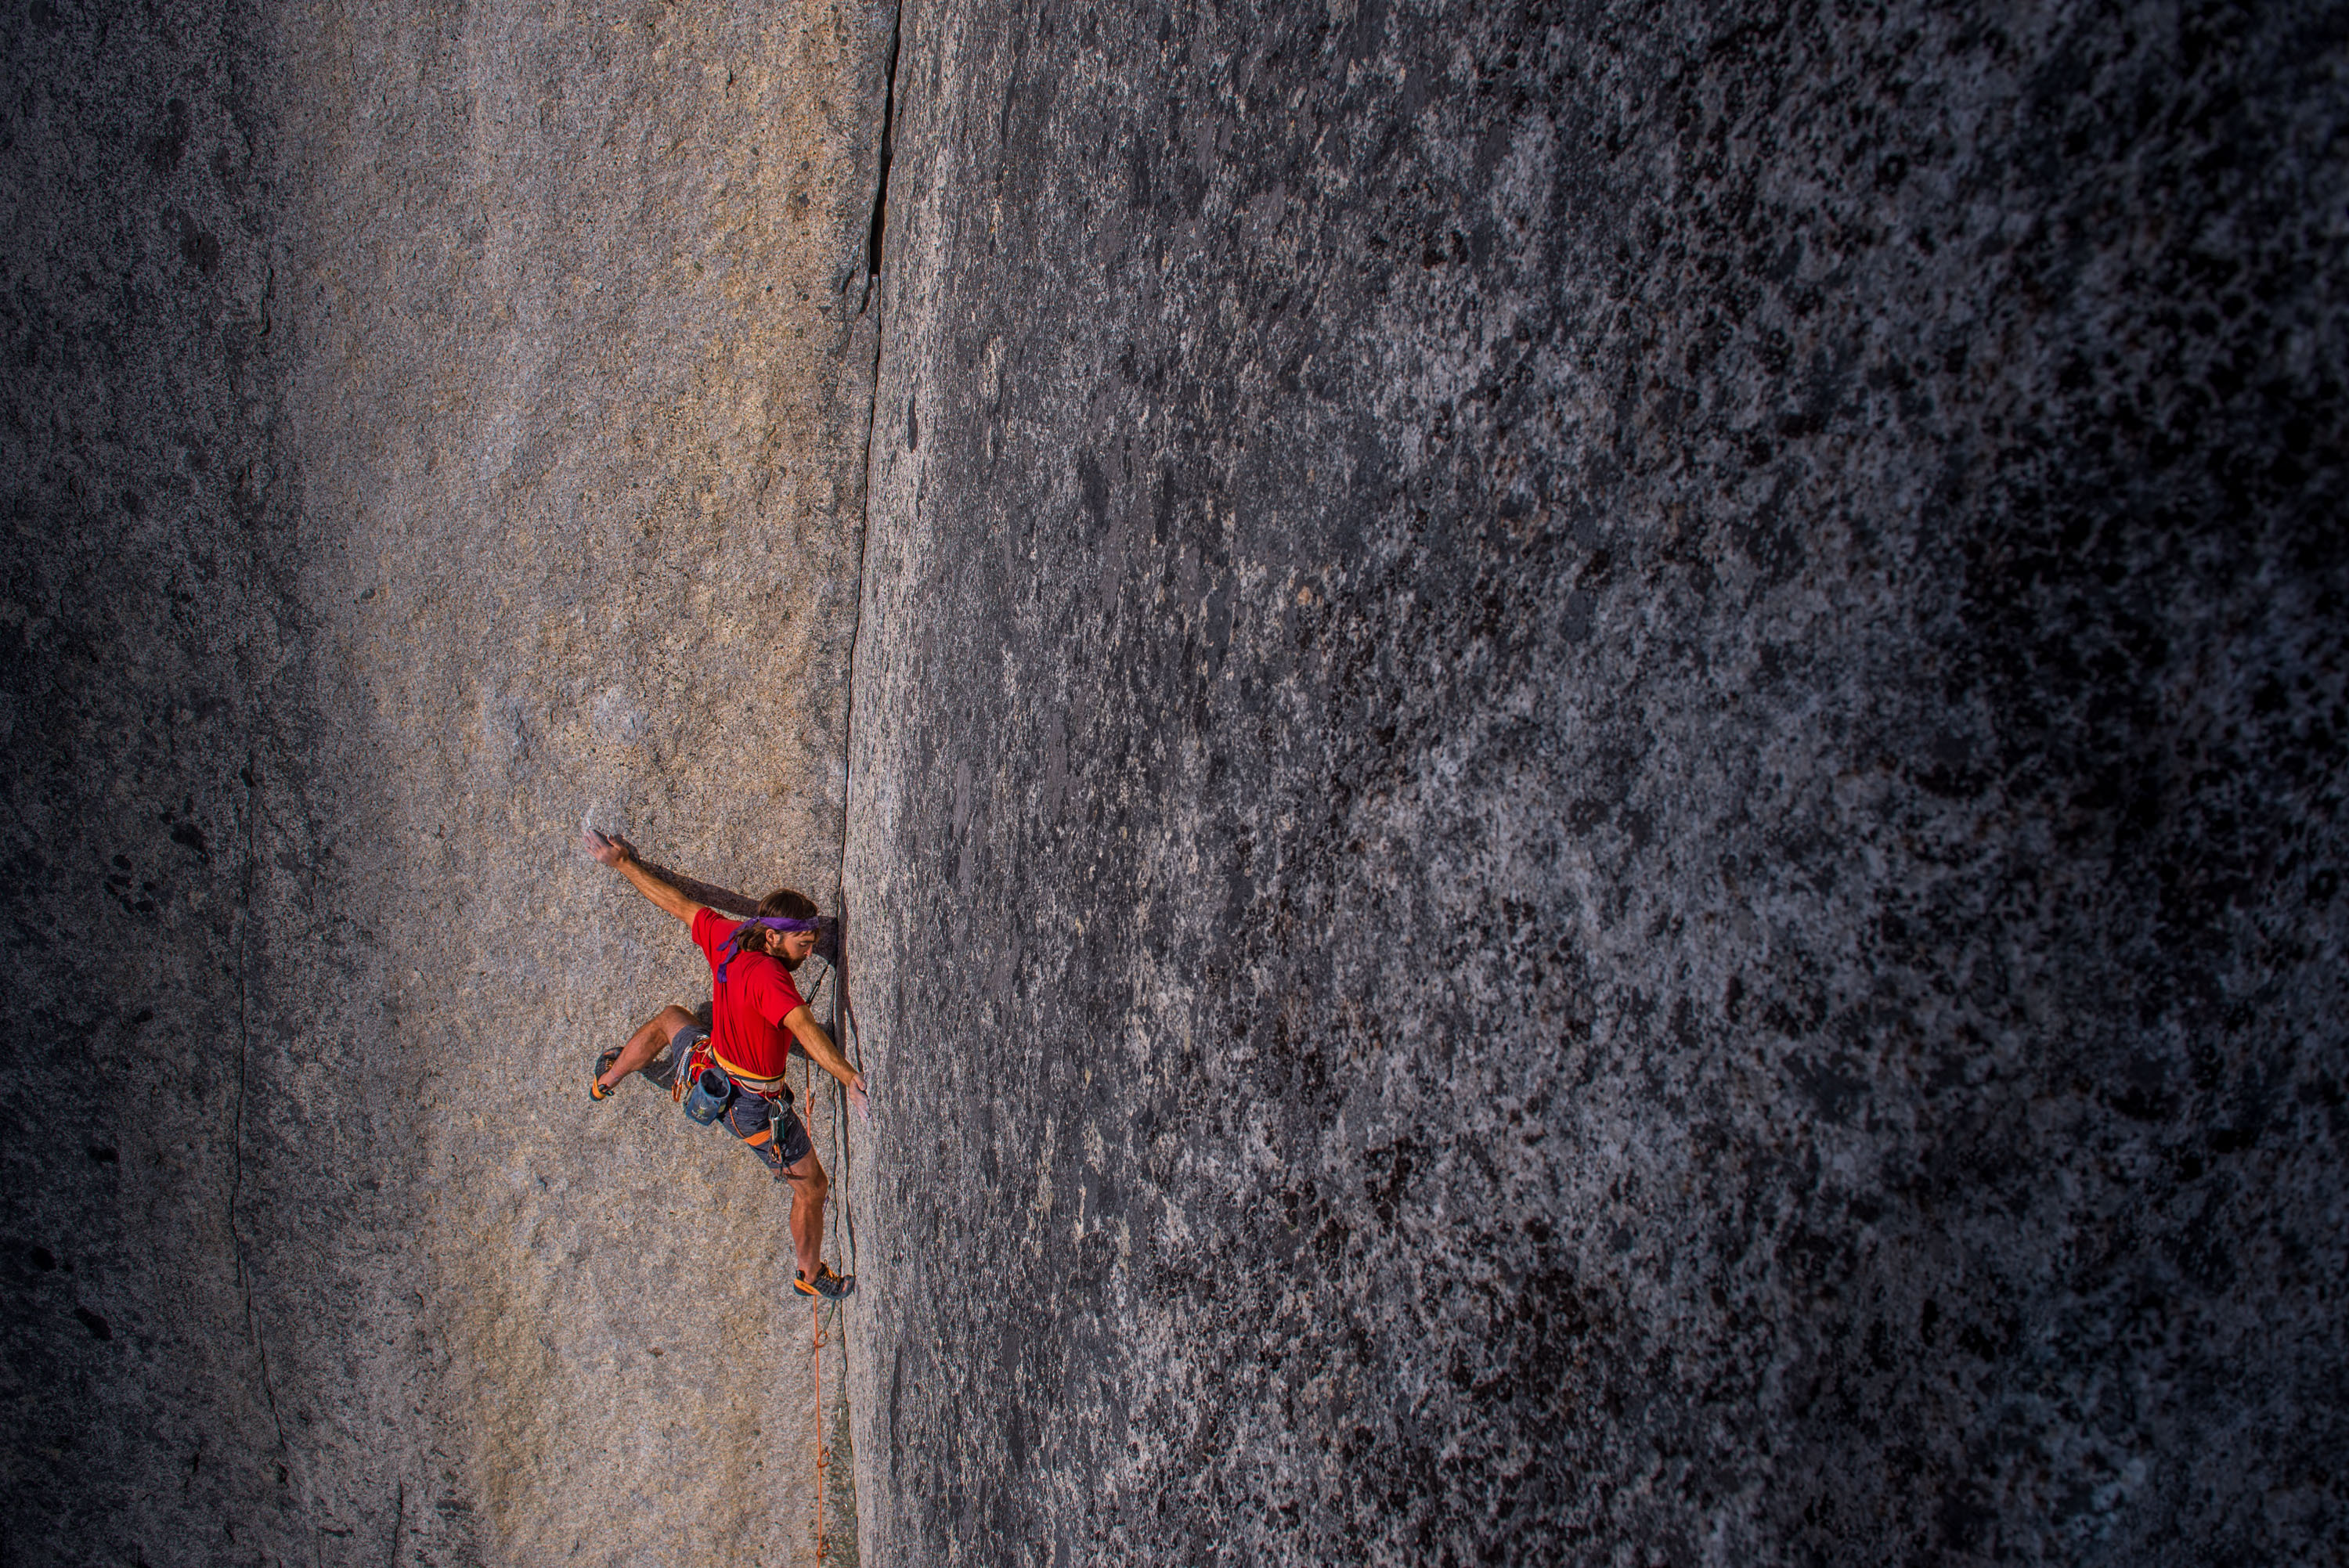 Climbing With a Camera